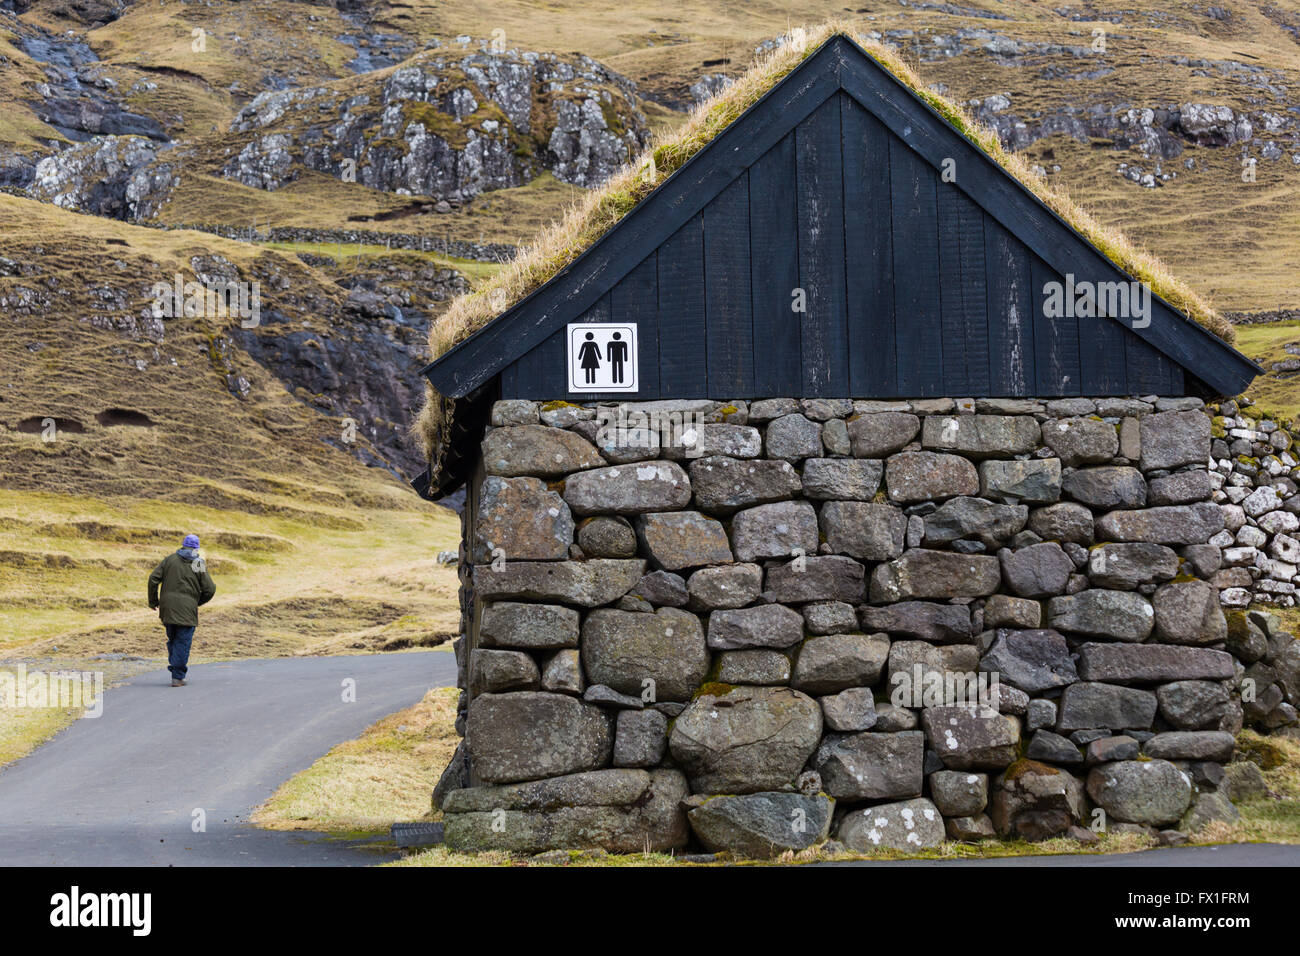 Grass roofed toilet conveniences at Saksun ancient village, Streymoy, Faroe Islands in April - Stock Image